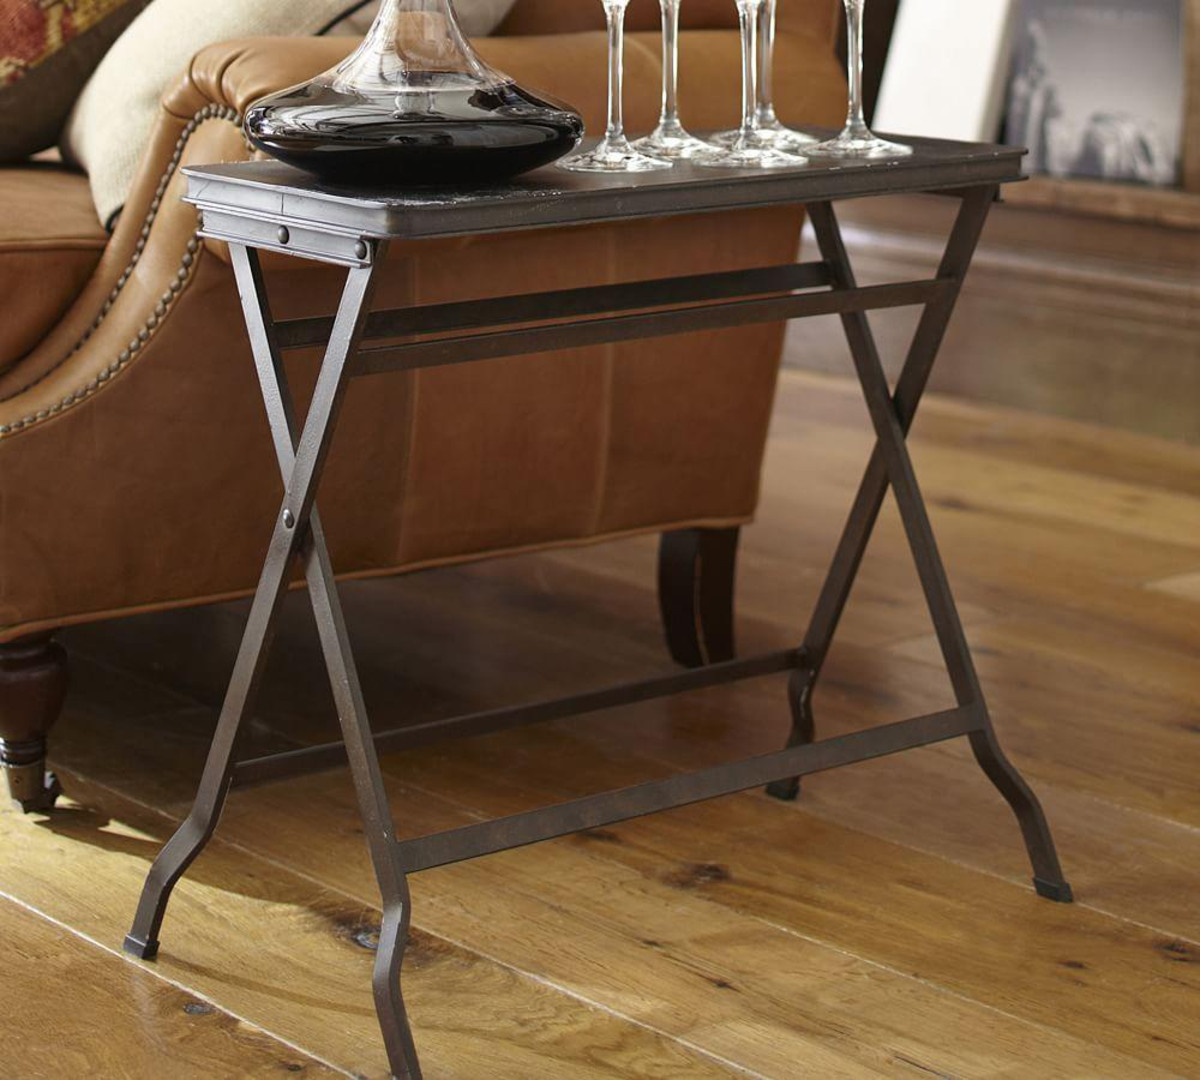 carter metal folding tray table pottery barn media zane accent side kmart bedside high end lamps for living room heavy duty umbrella stand mid century modern dining light bathroom